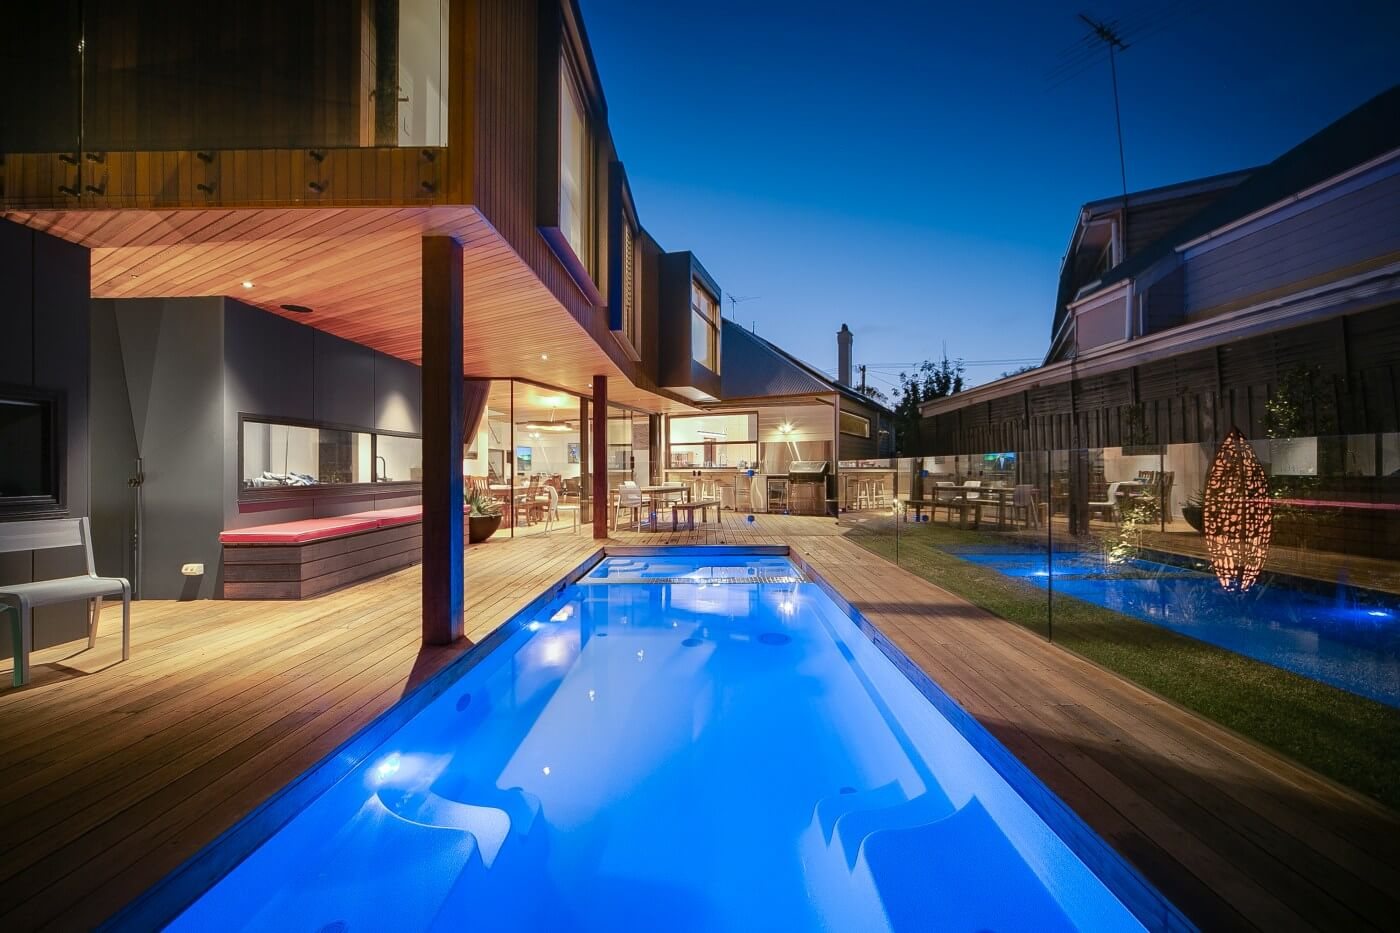 Swimming Pools Melbourne Your Guide To The Perfect Backyard Pool